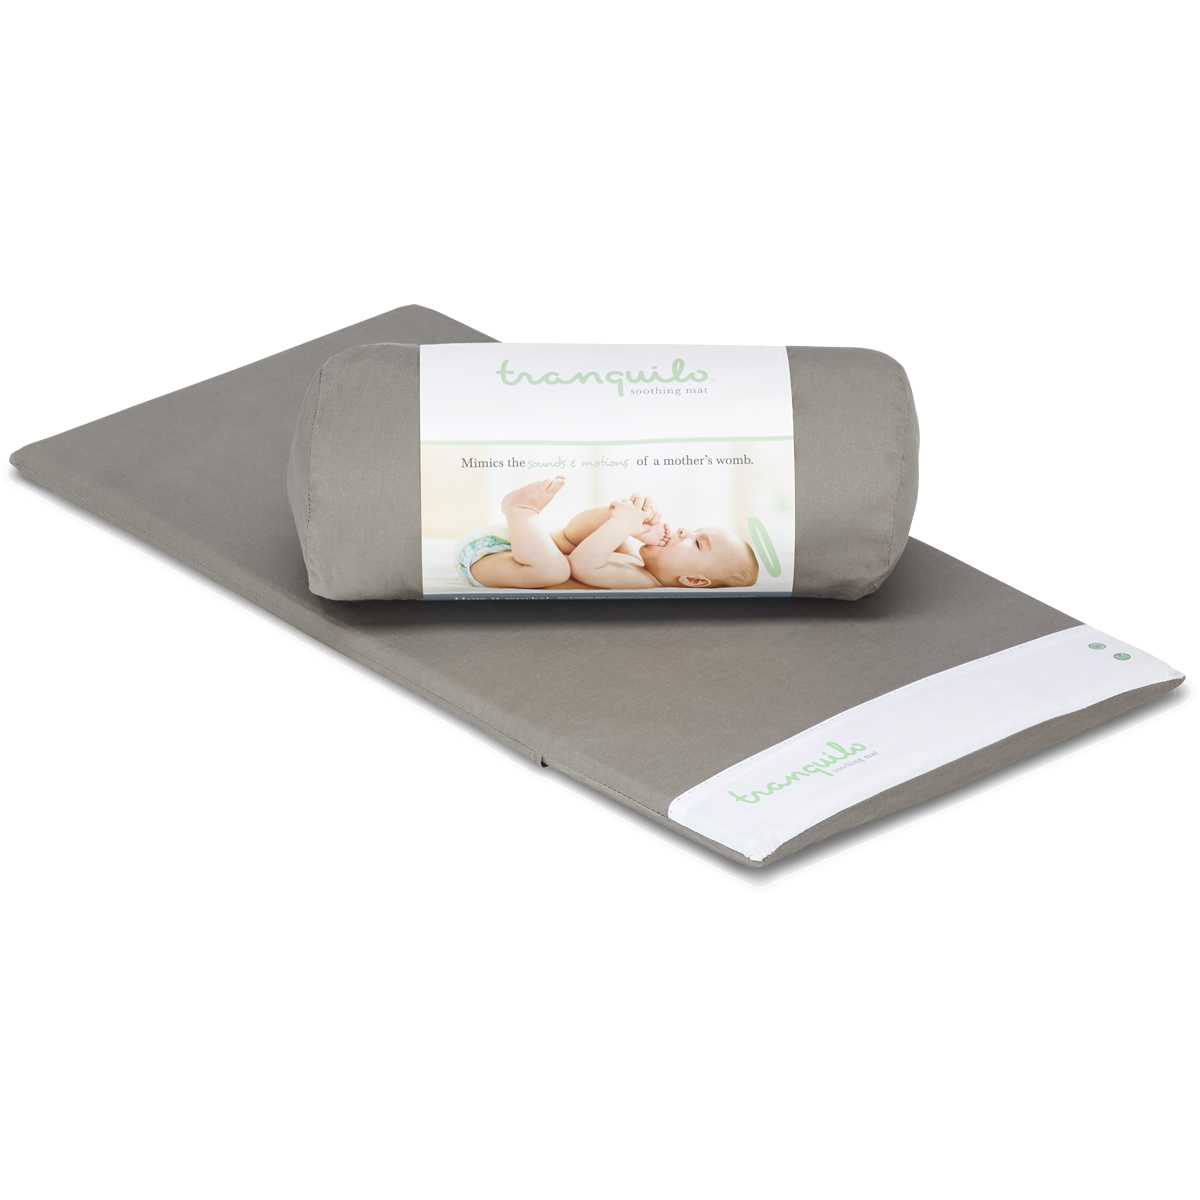 Tranquilo Soothing Mat, Large